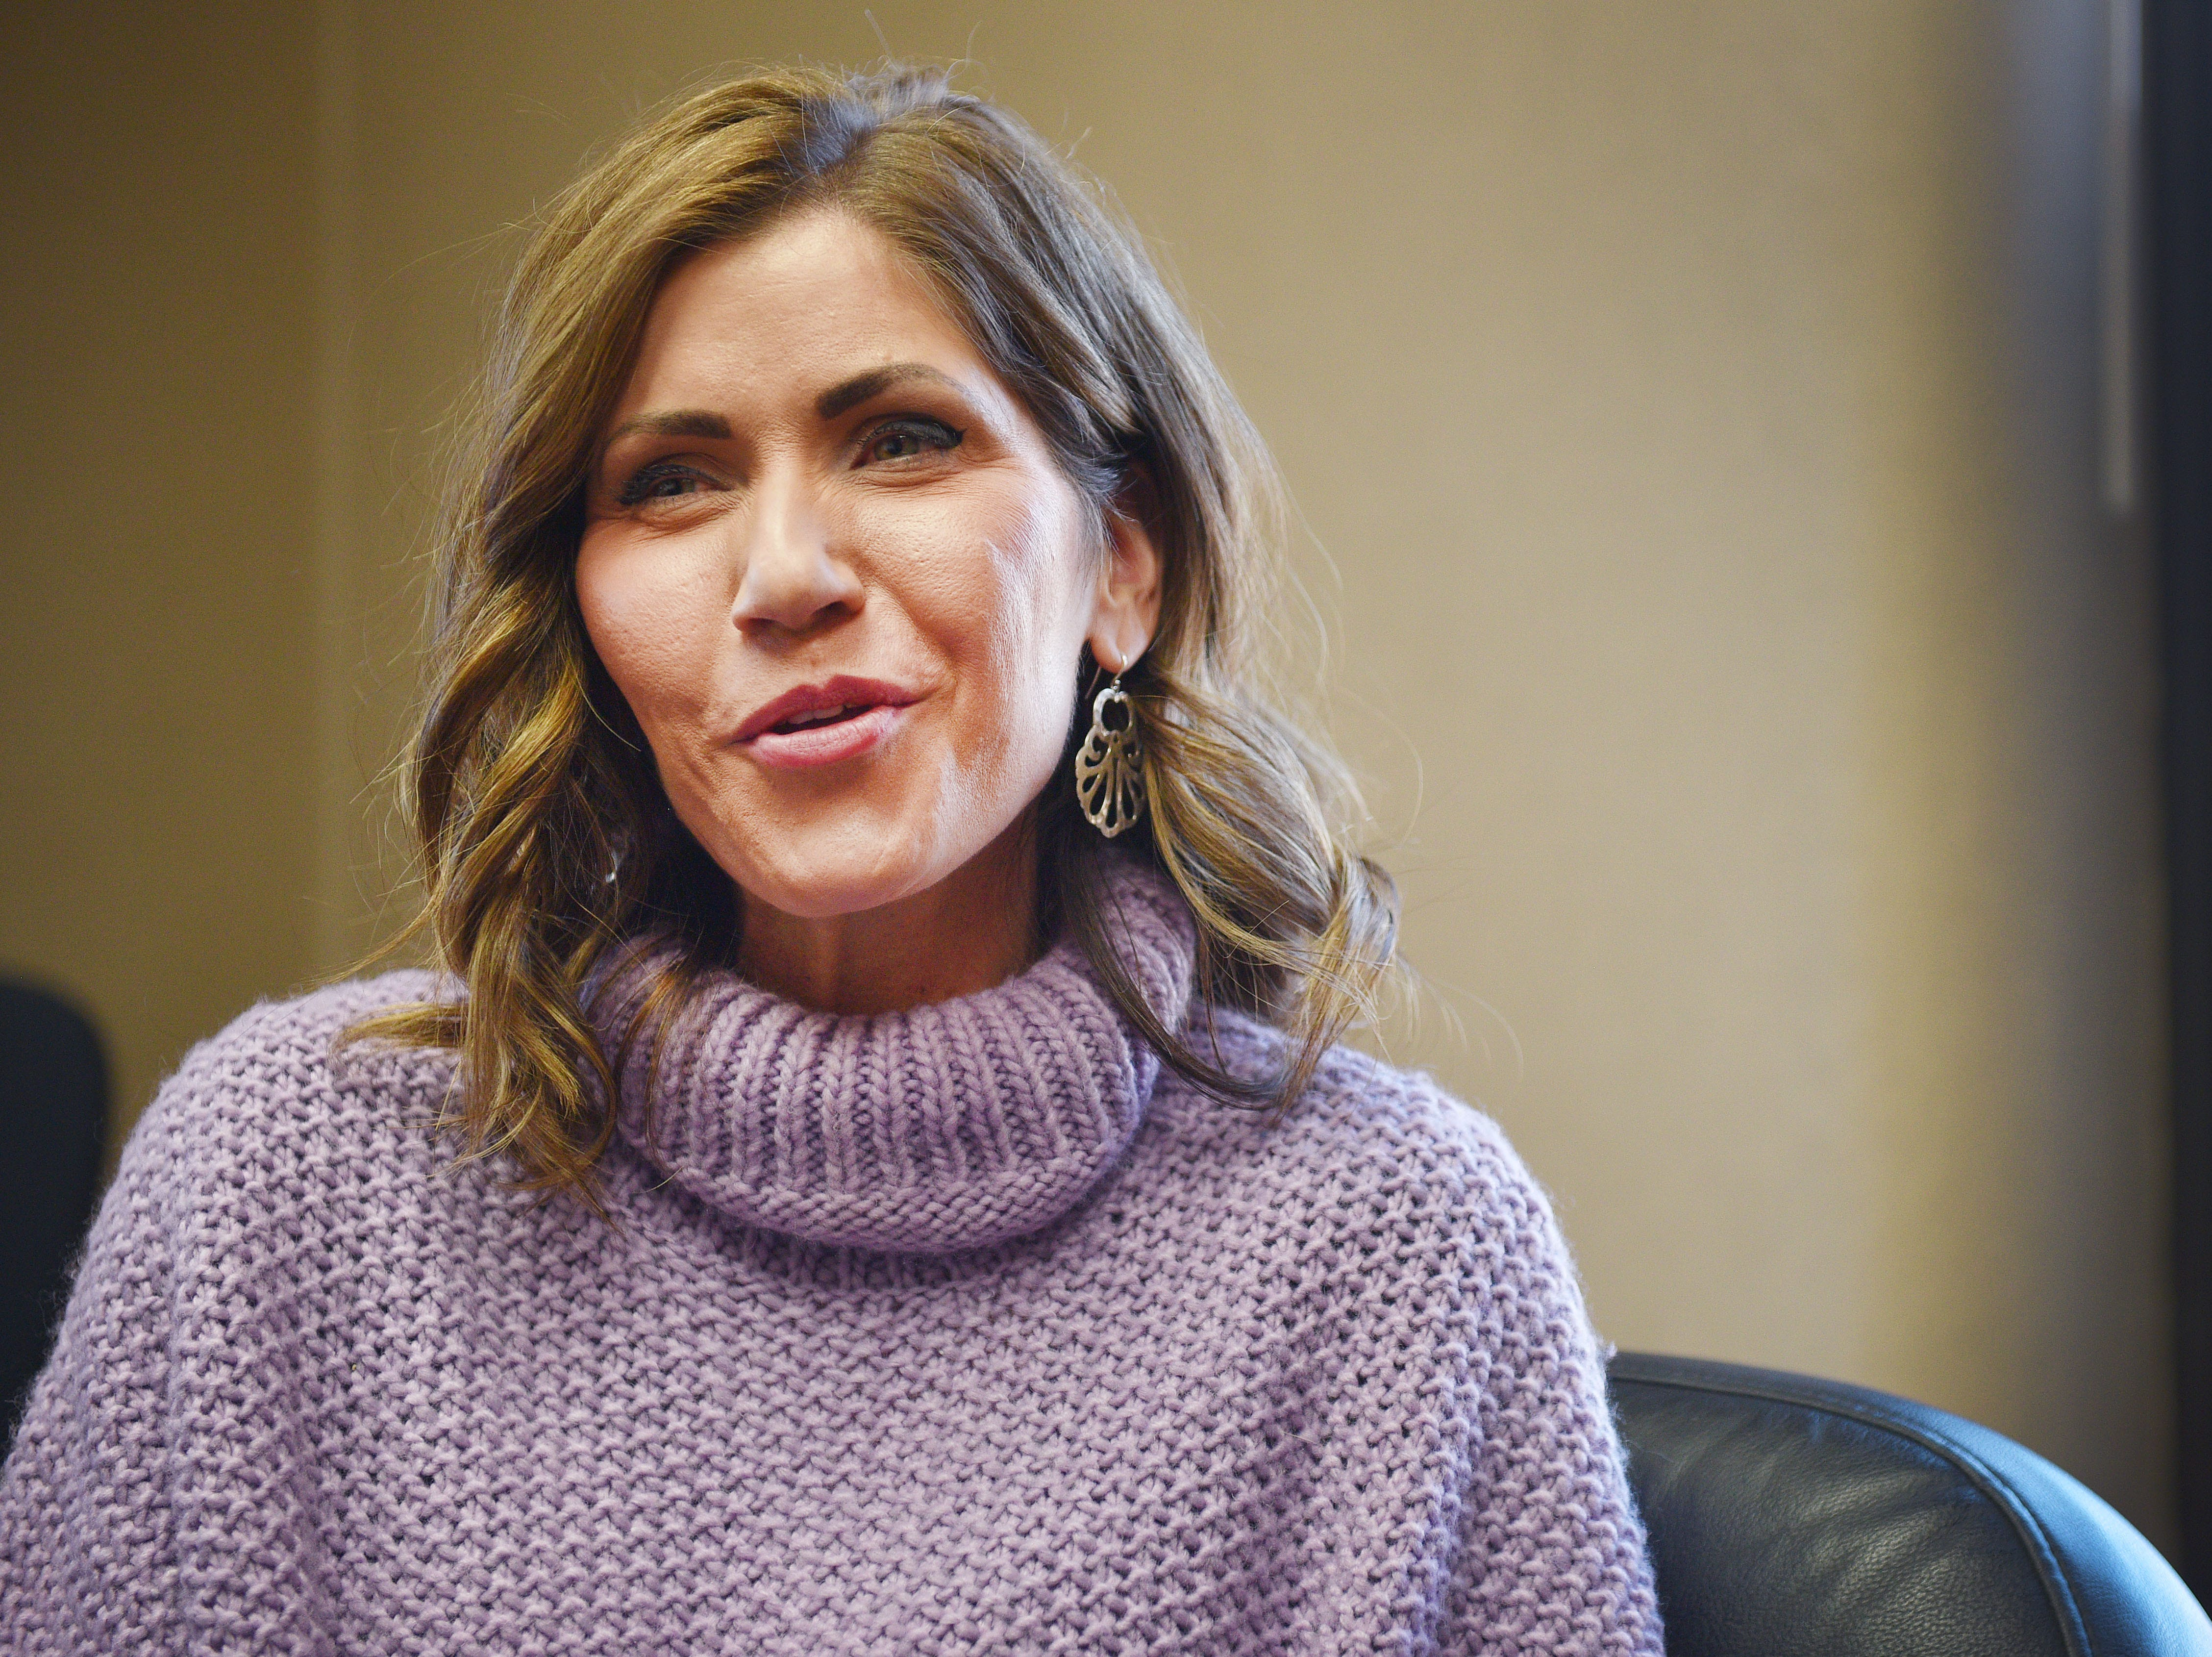 Gov.-elect Kristi Noem talks about her plans for her term as governor Wednesday, Dec. 19, at the South Dakota State Capitol in Pierre.